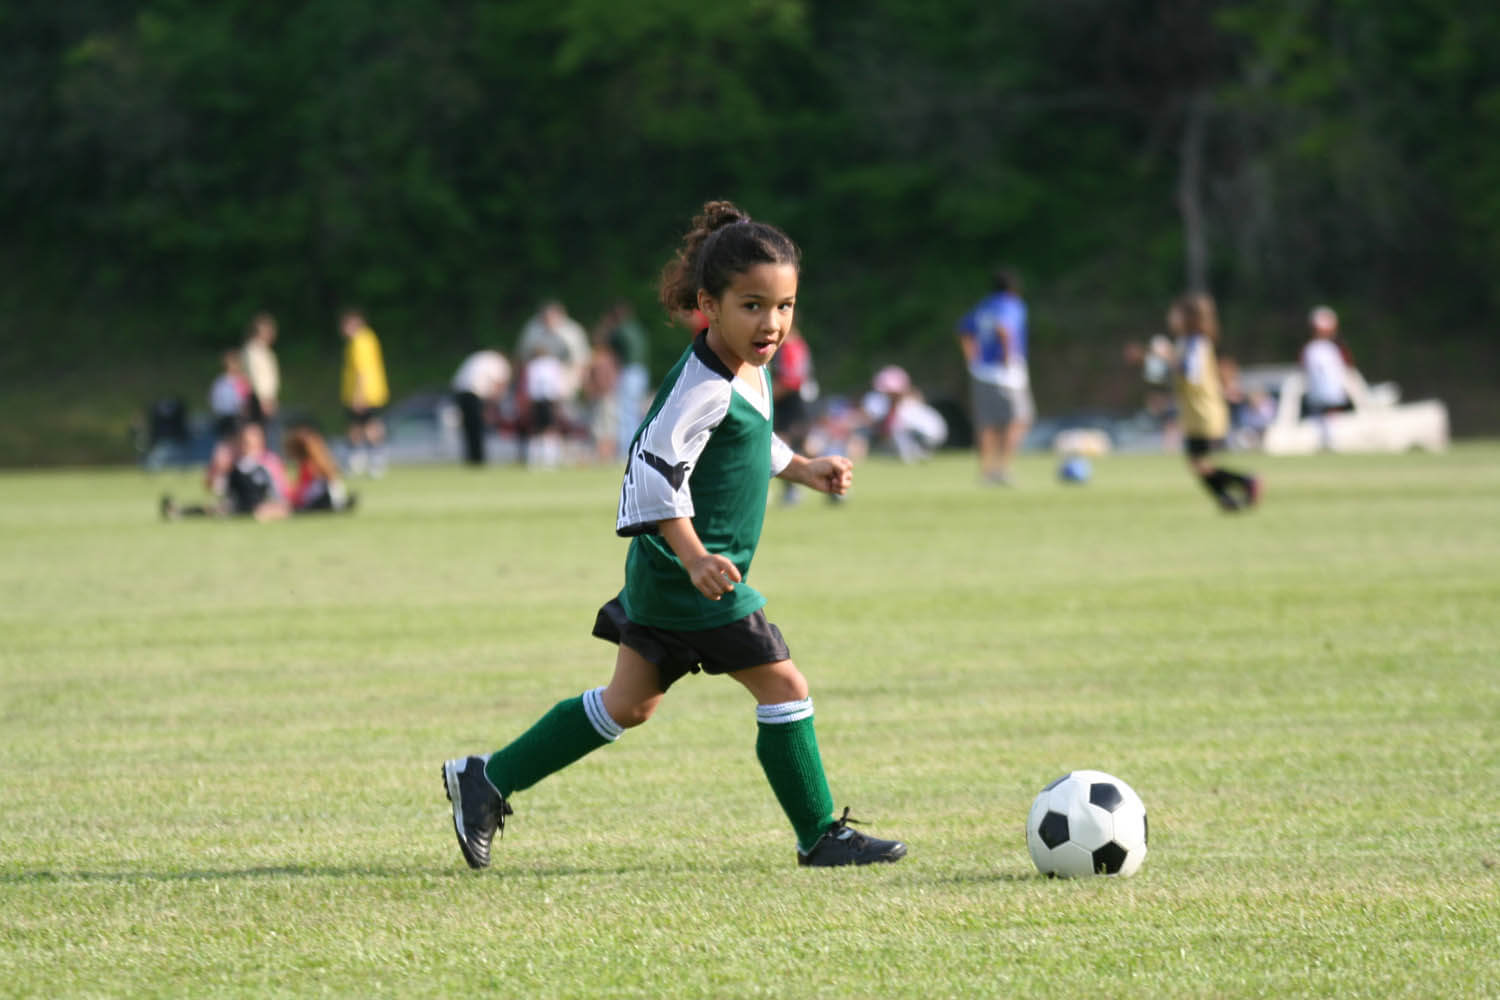 African American girl soccer player kicking a ball in a youth sports soccer match